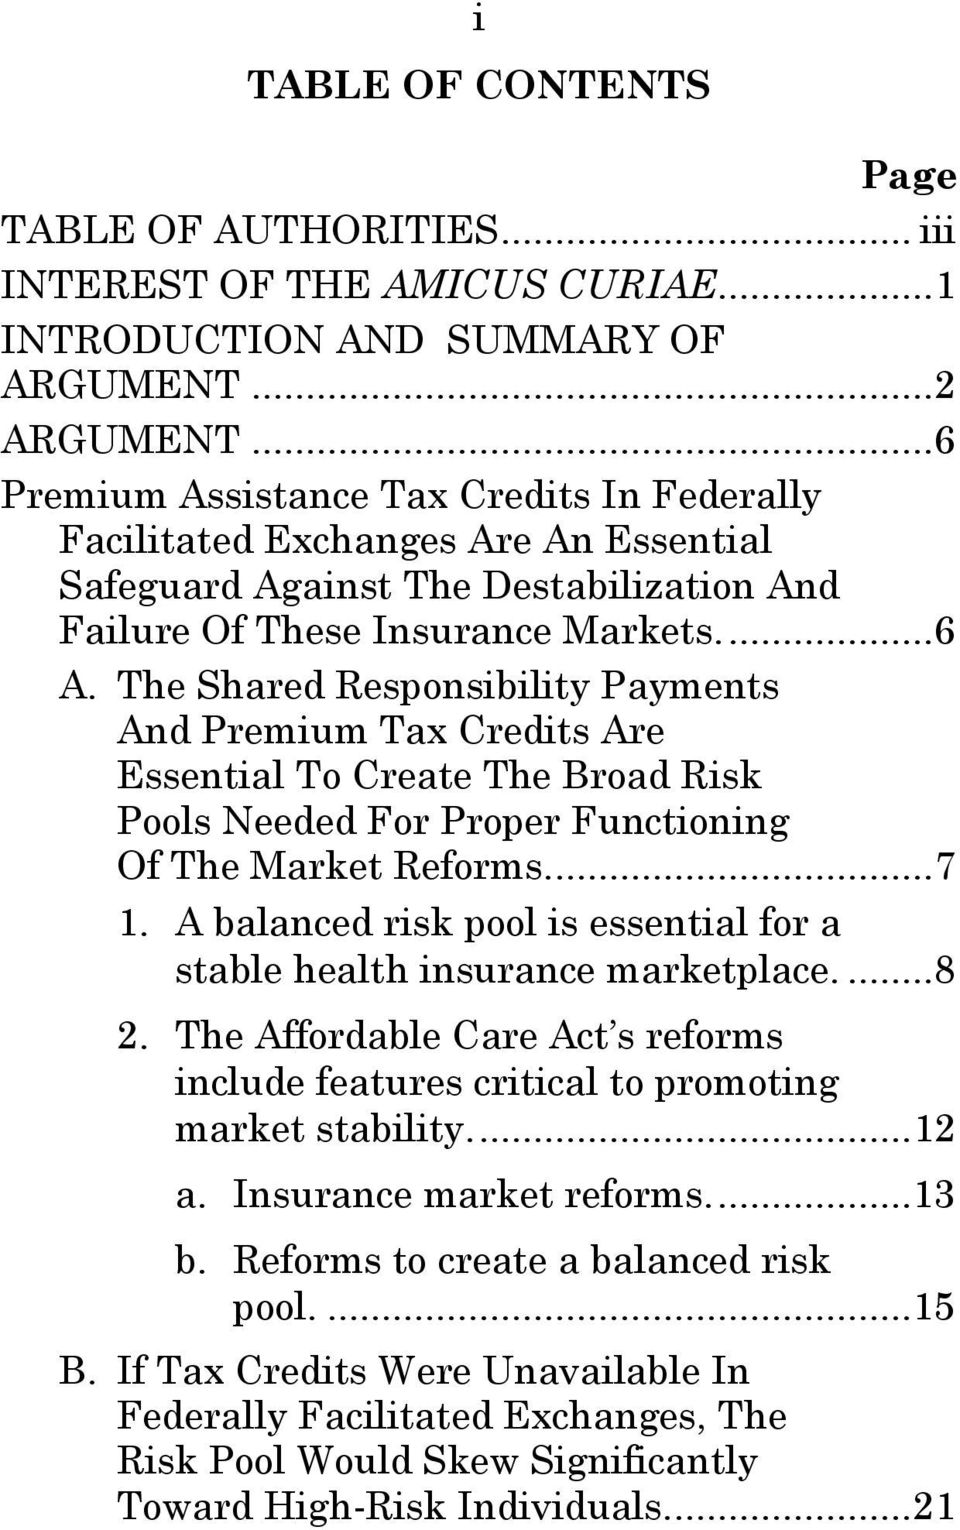 The Shared Responsibility Payments And Premium Tax Credits Are Essential To Create The Broad Risk Pools Needed For Proper Functioning Of The Market Reforms...7 1.